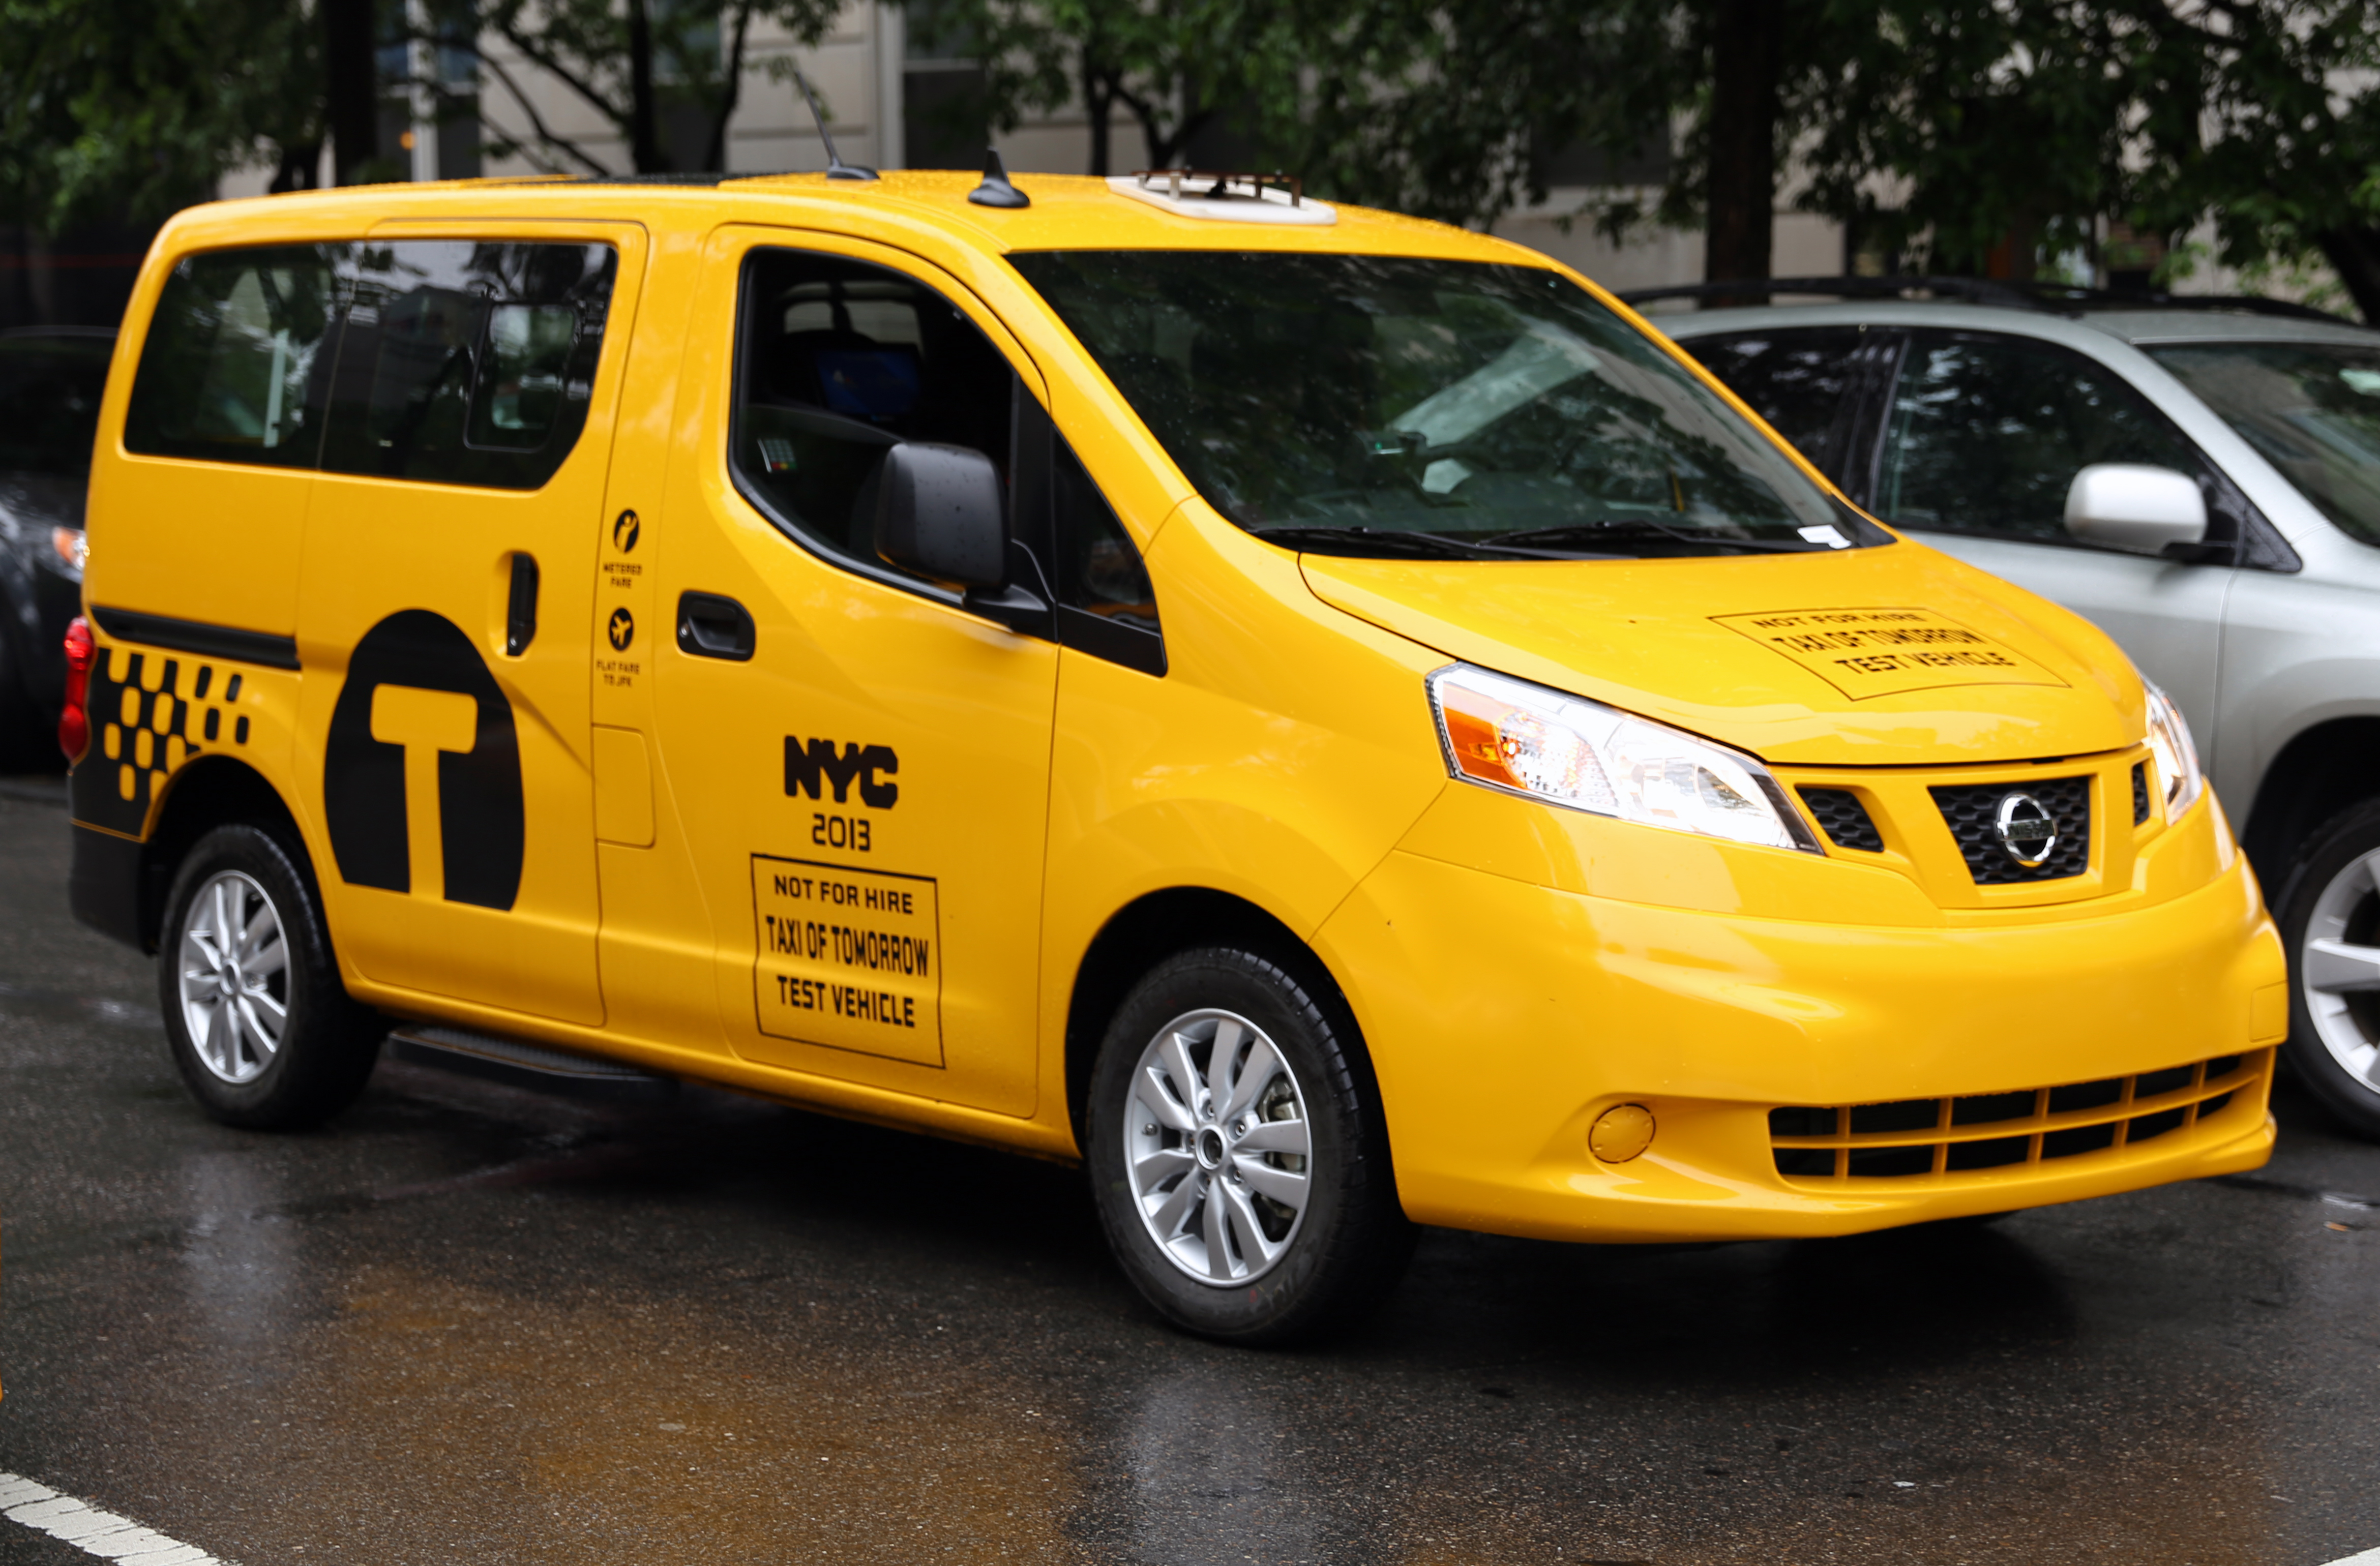 file nissan nv200 taxi of tomorrow test vehicle jpg wikimedia commons. Black Bedroom Furniture Sets. Home Design Ideas